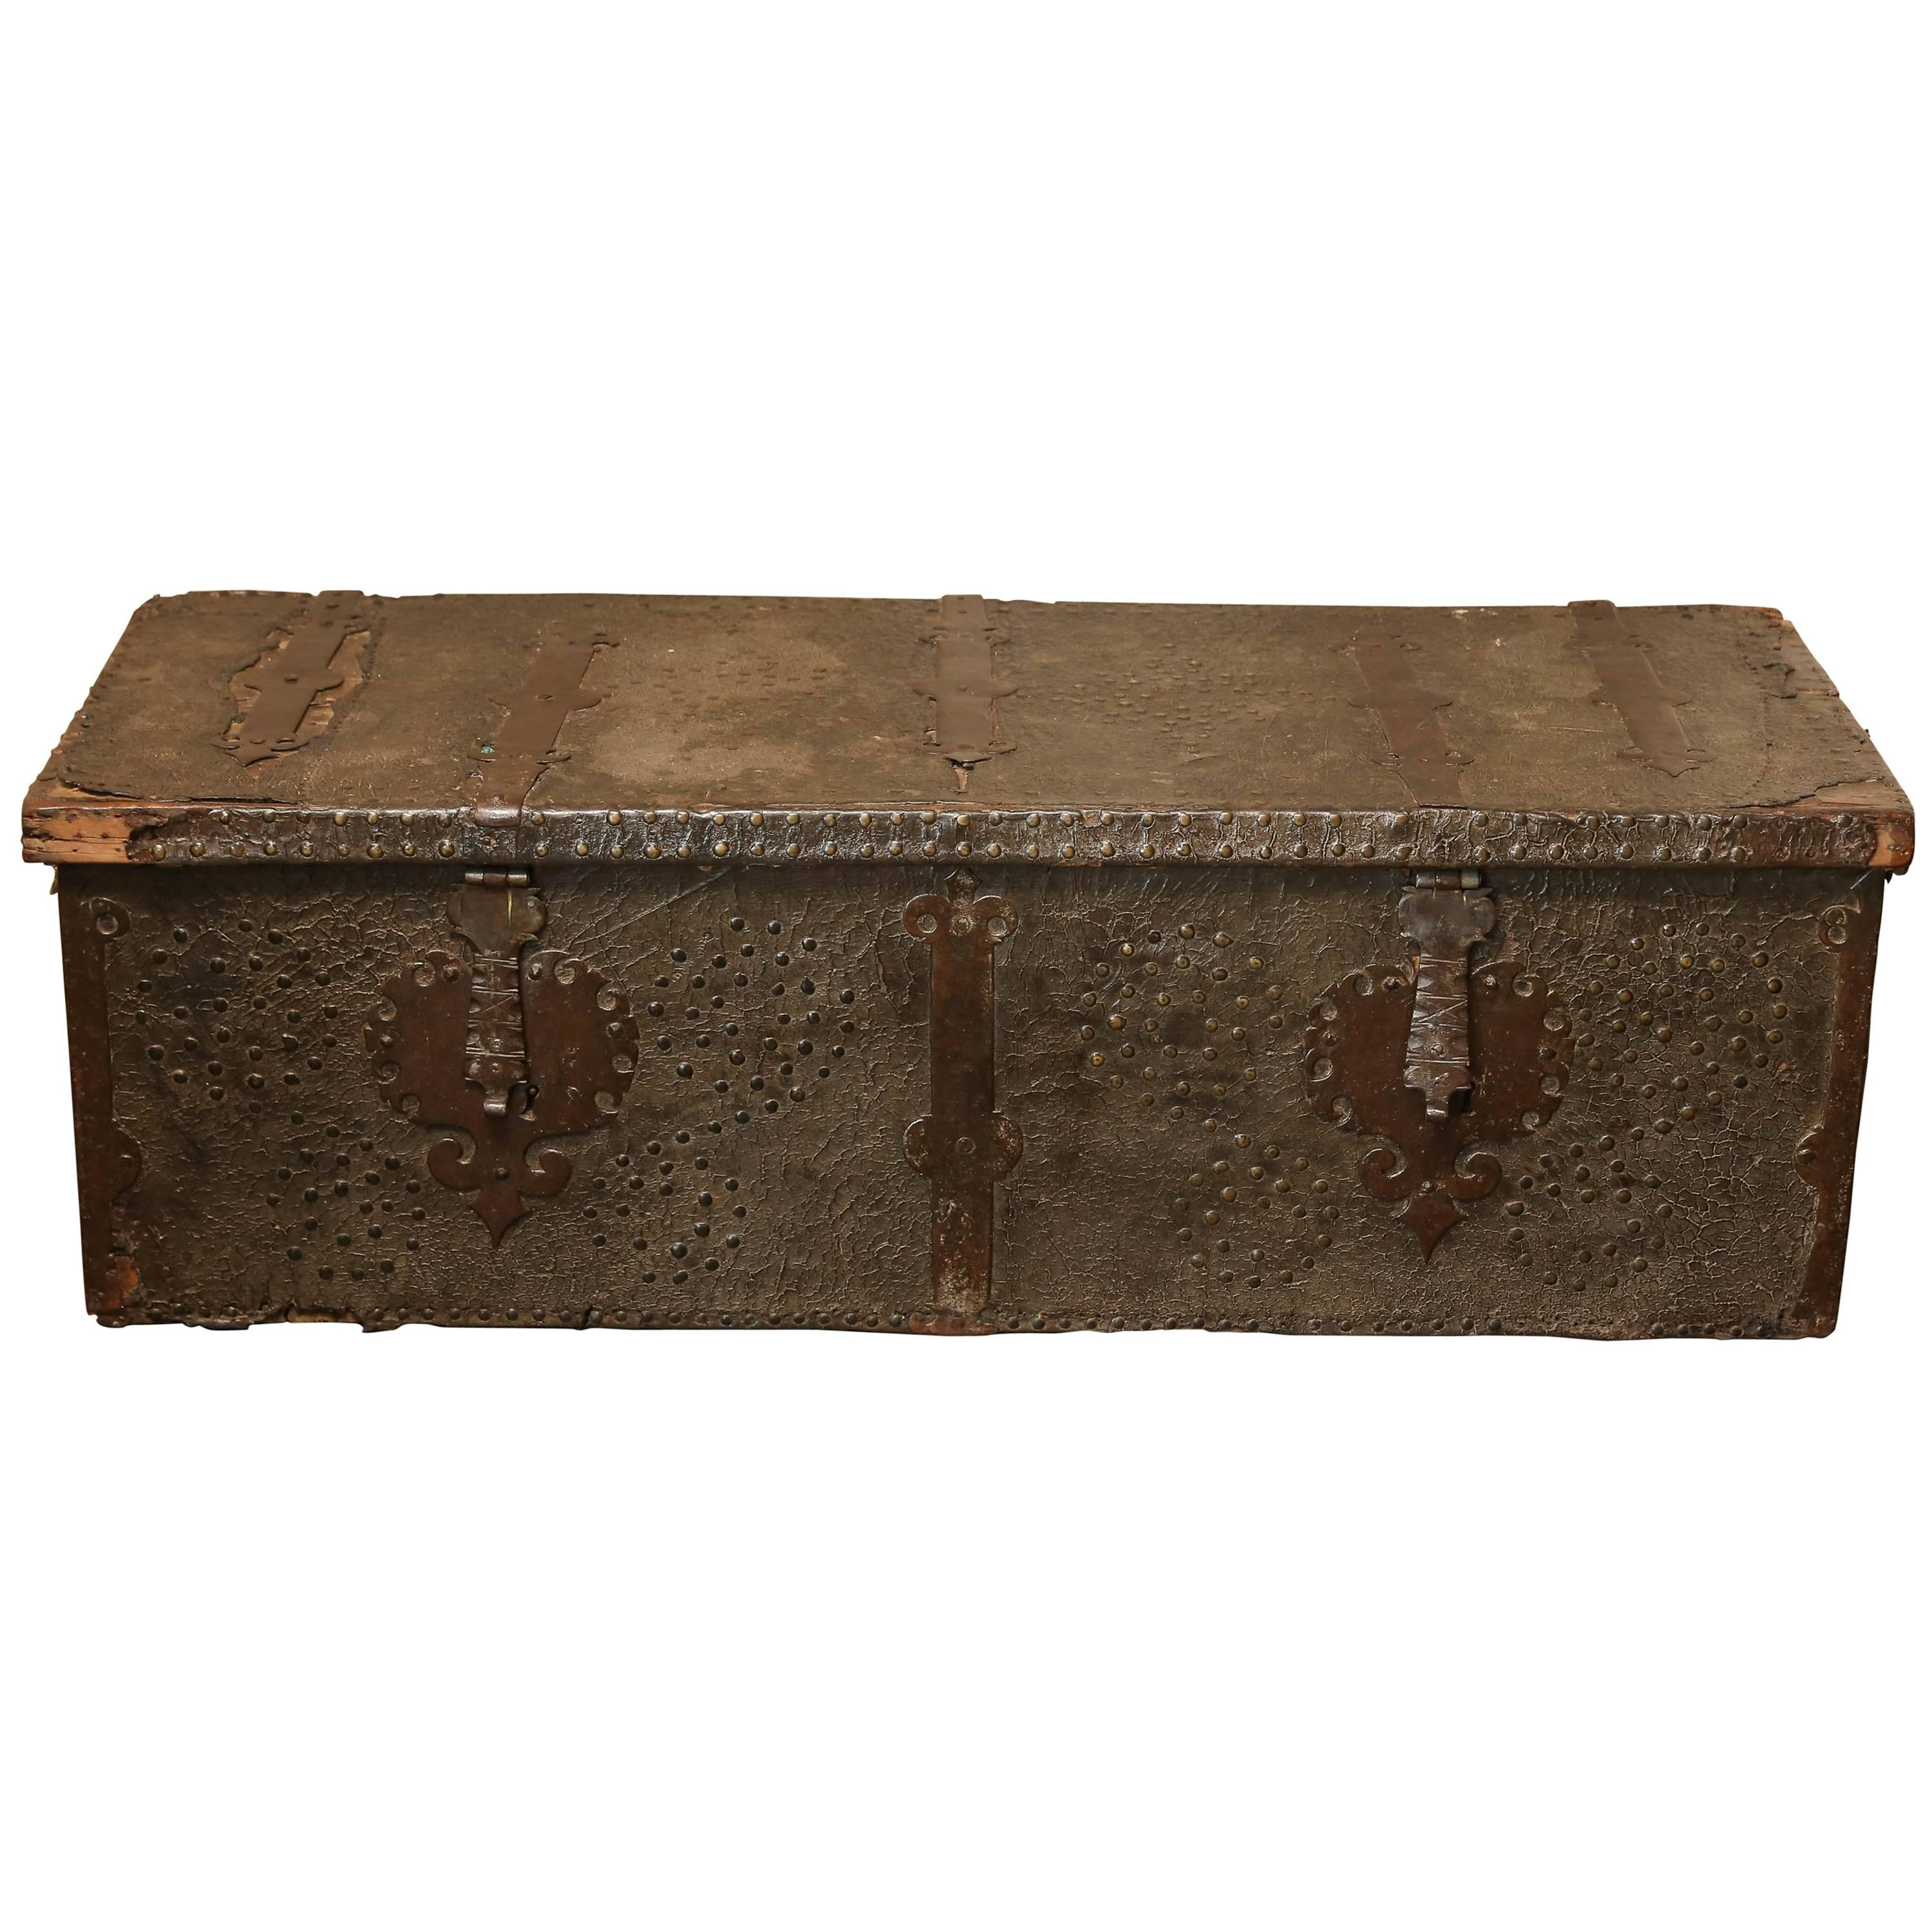 Late 16th Century Spanish Leather Trunk